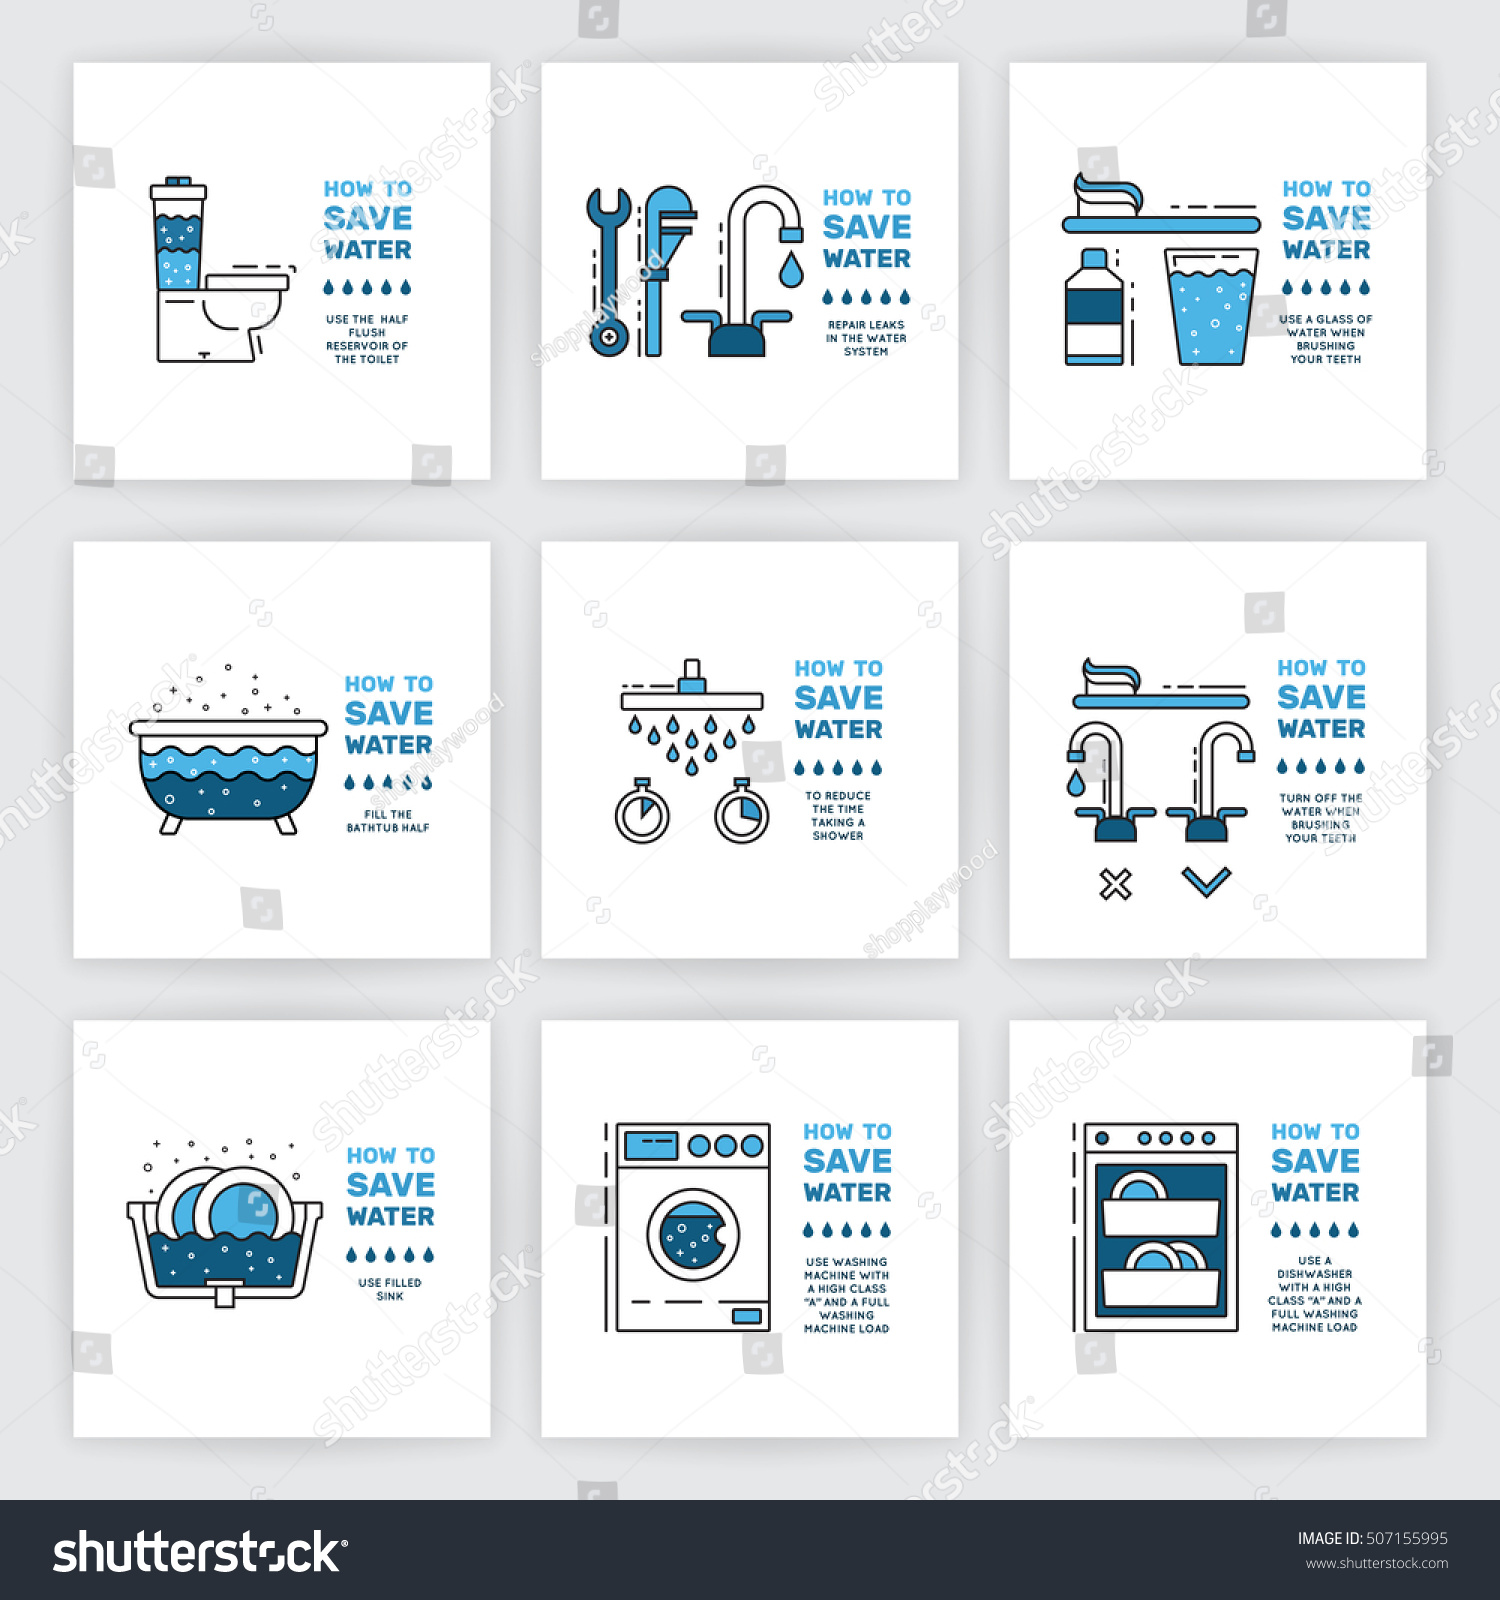 Illustration with tips on saving water consumption by man in a house - Illustration Tips On Saving Water Consumption Stock Vector